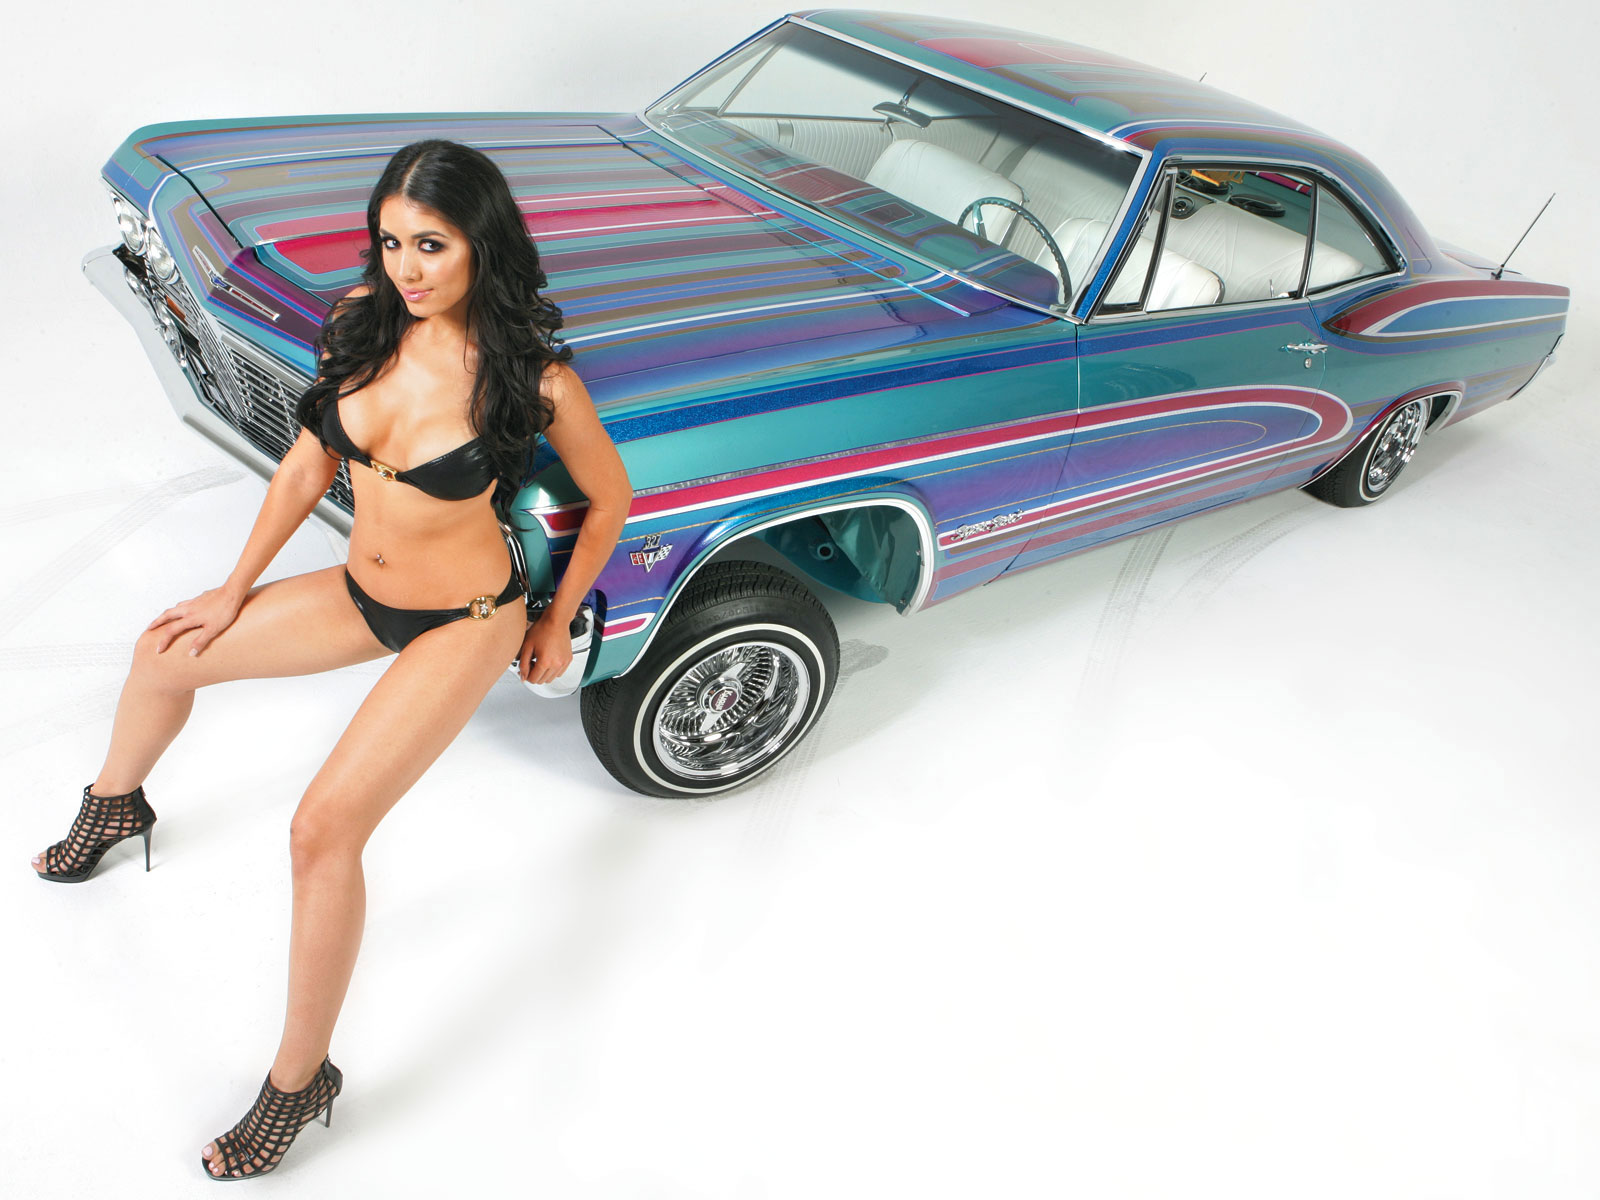 Nude lowrider girls and cars